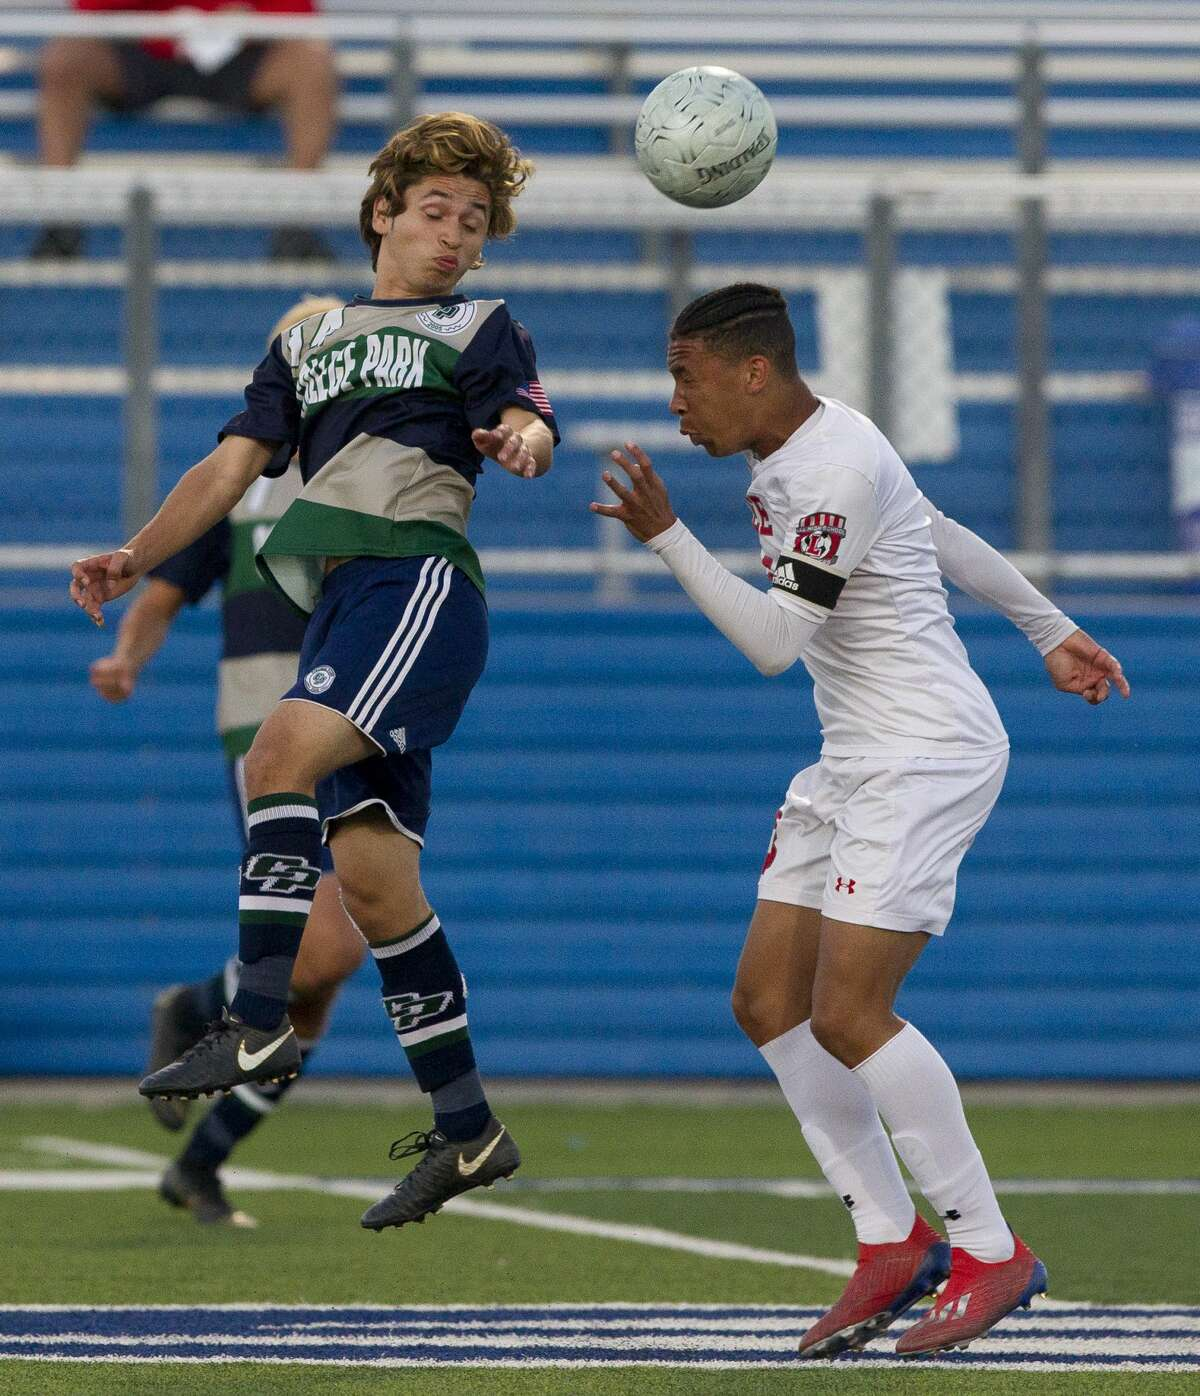 College Park forward Jesse Botello (14) heads the ball in the first period of a Class 6A boys state semifinal match during the UIL State Soccer Championships at Birkelbach Field, Friday, April 19, 2019, in Georgetown.